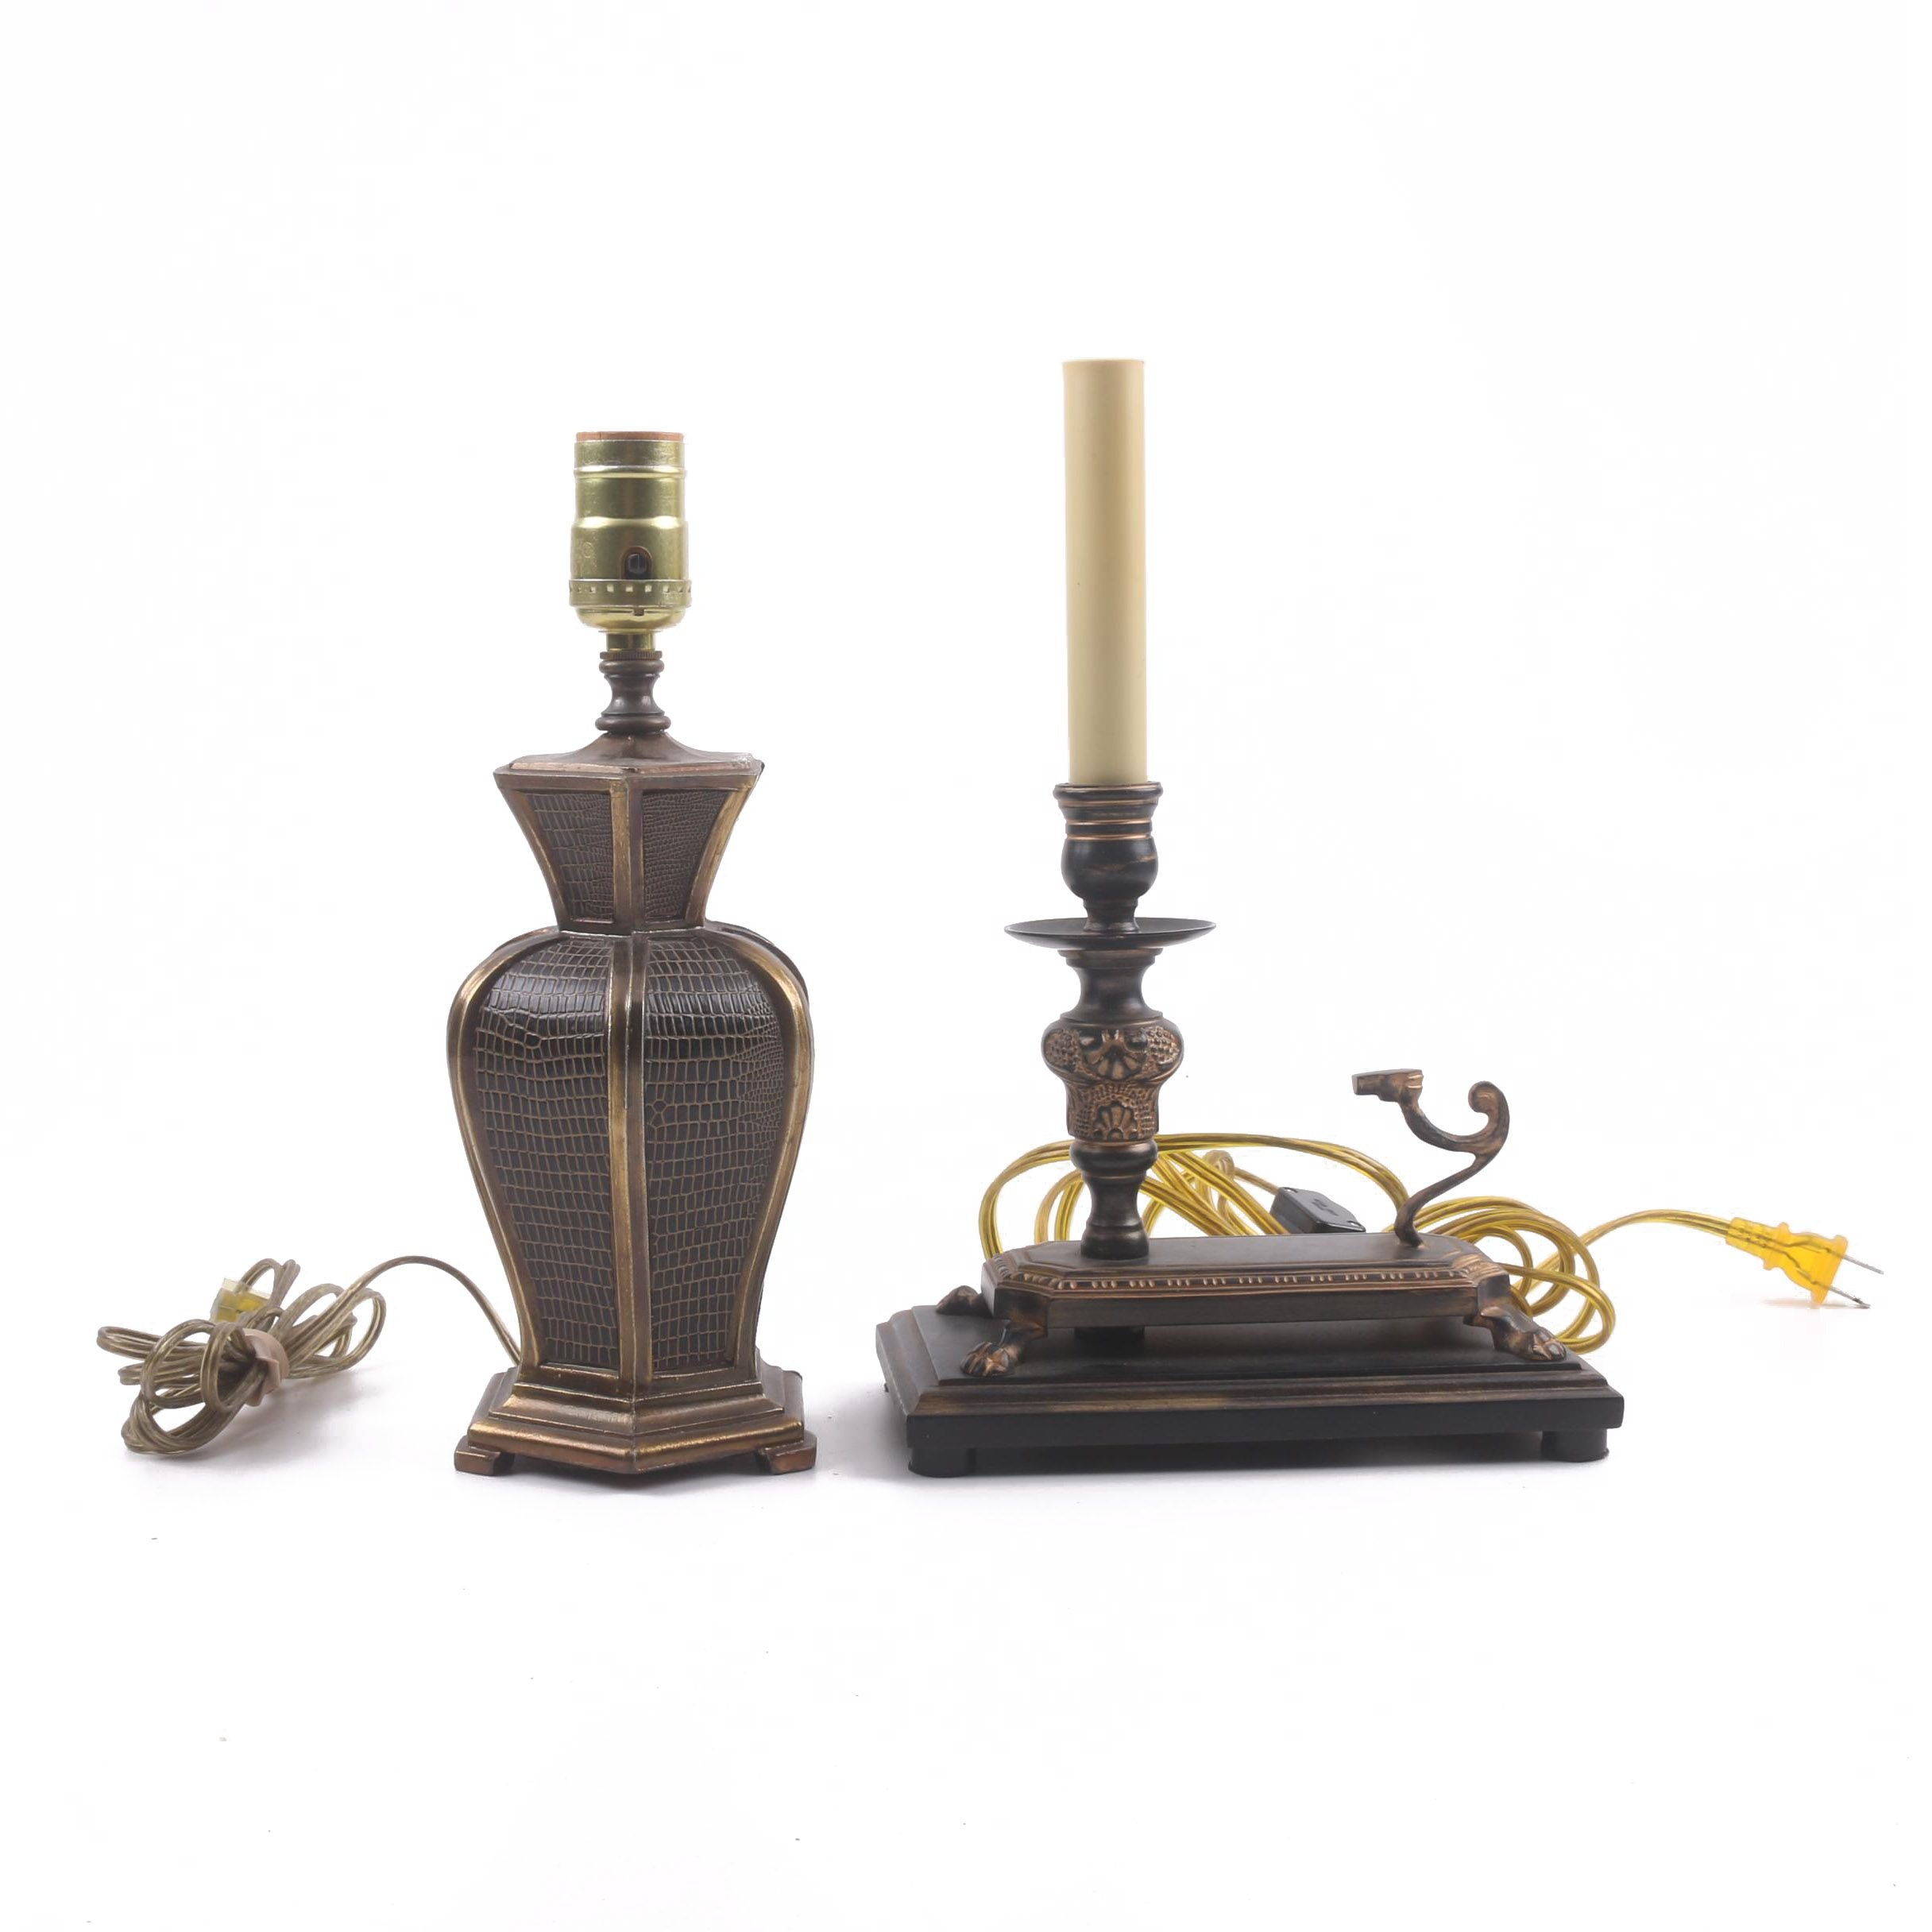 Brass Table Lamp with Faux Skin Textures and Candlestick Style Lamp